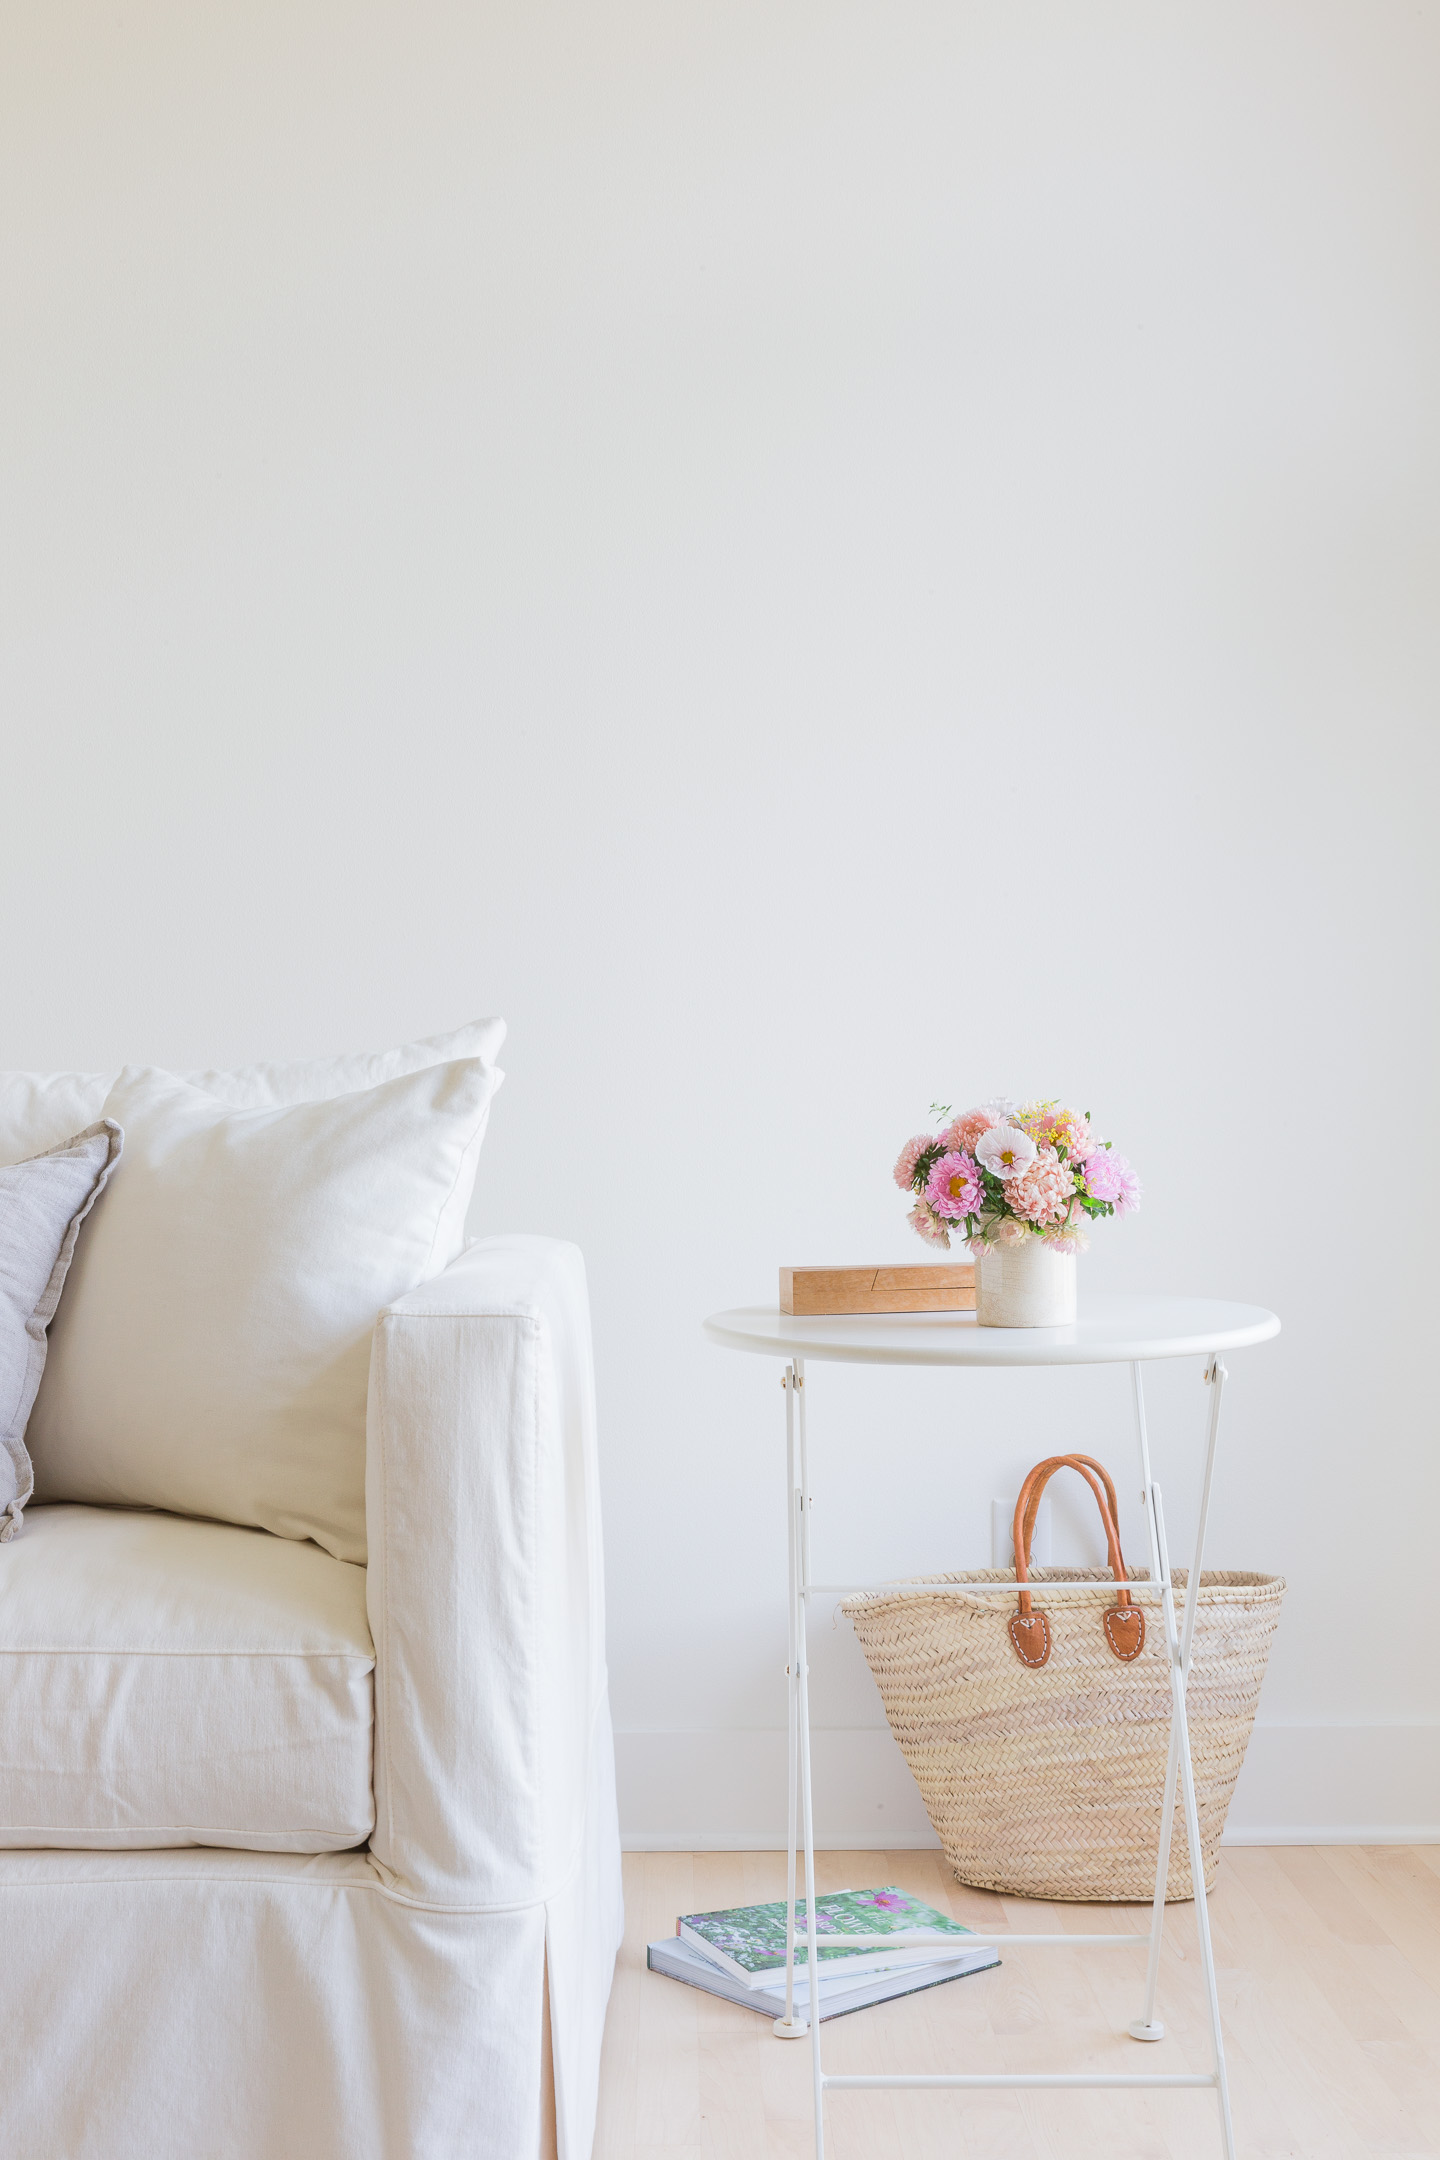 A small flower arrangement on a white table next to a white couch.